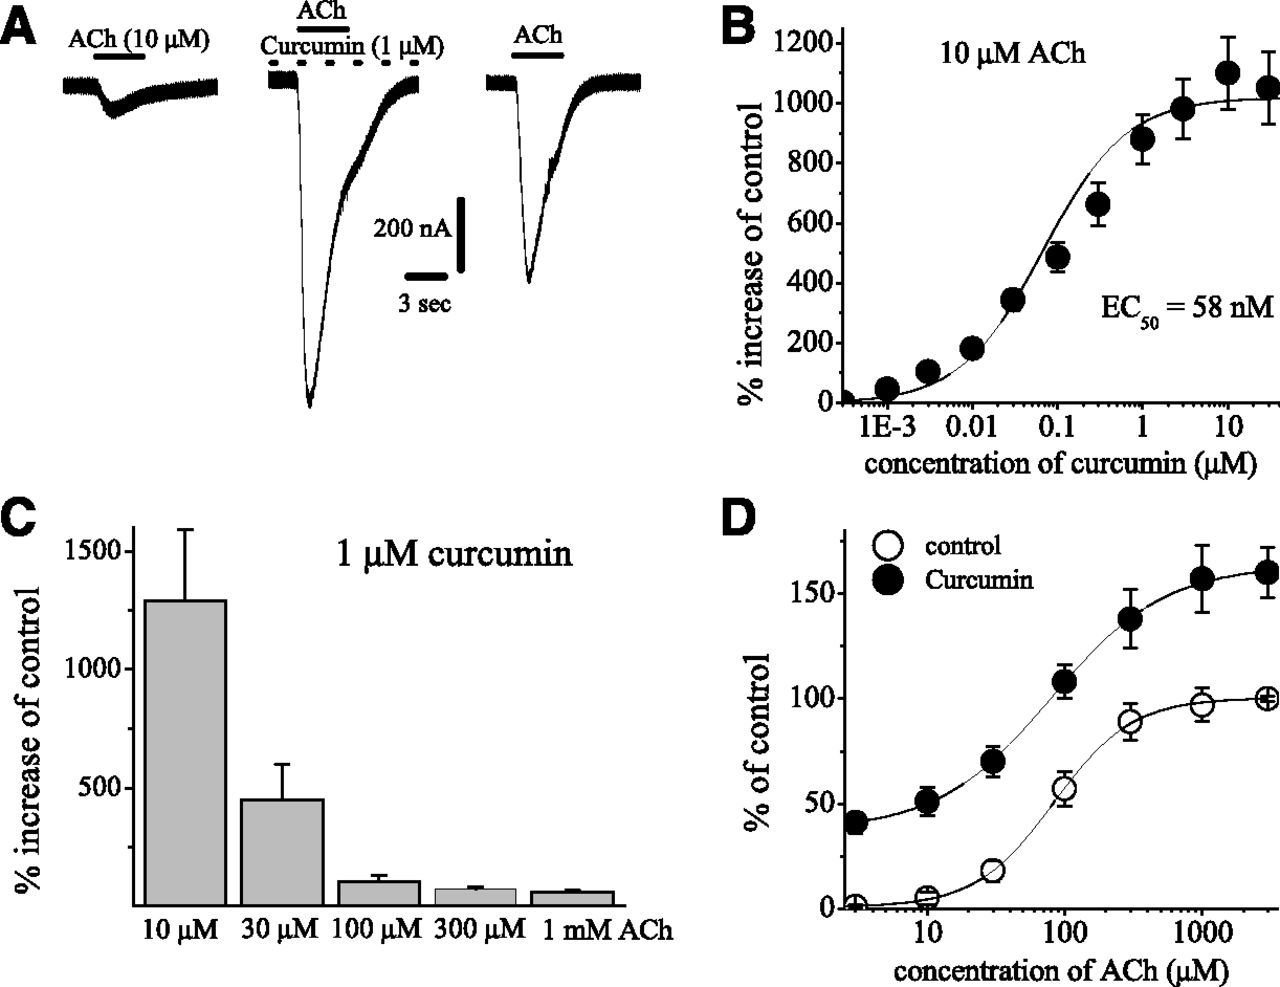 Curcumin Acts as a Positive Allosteric Modulator of α7-Nicotinic